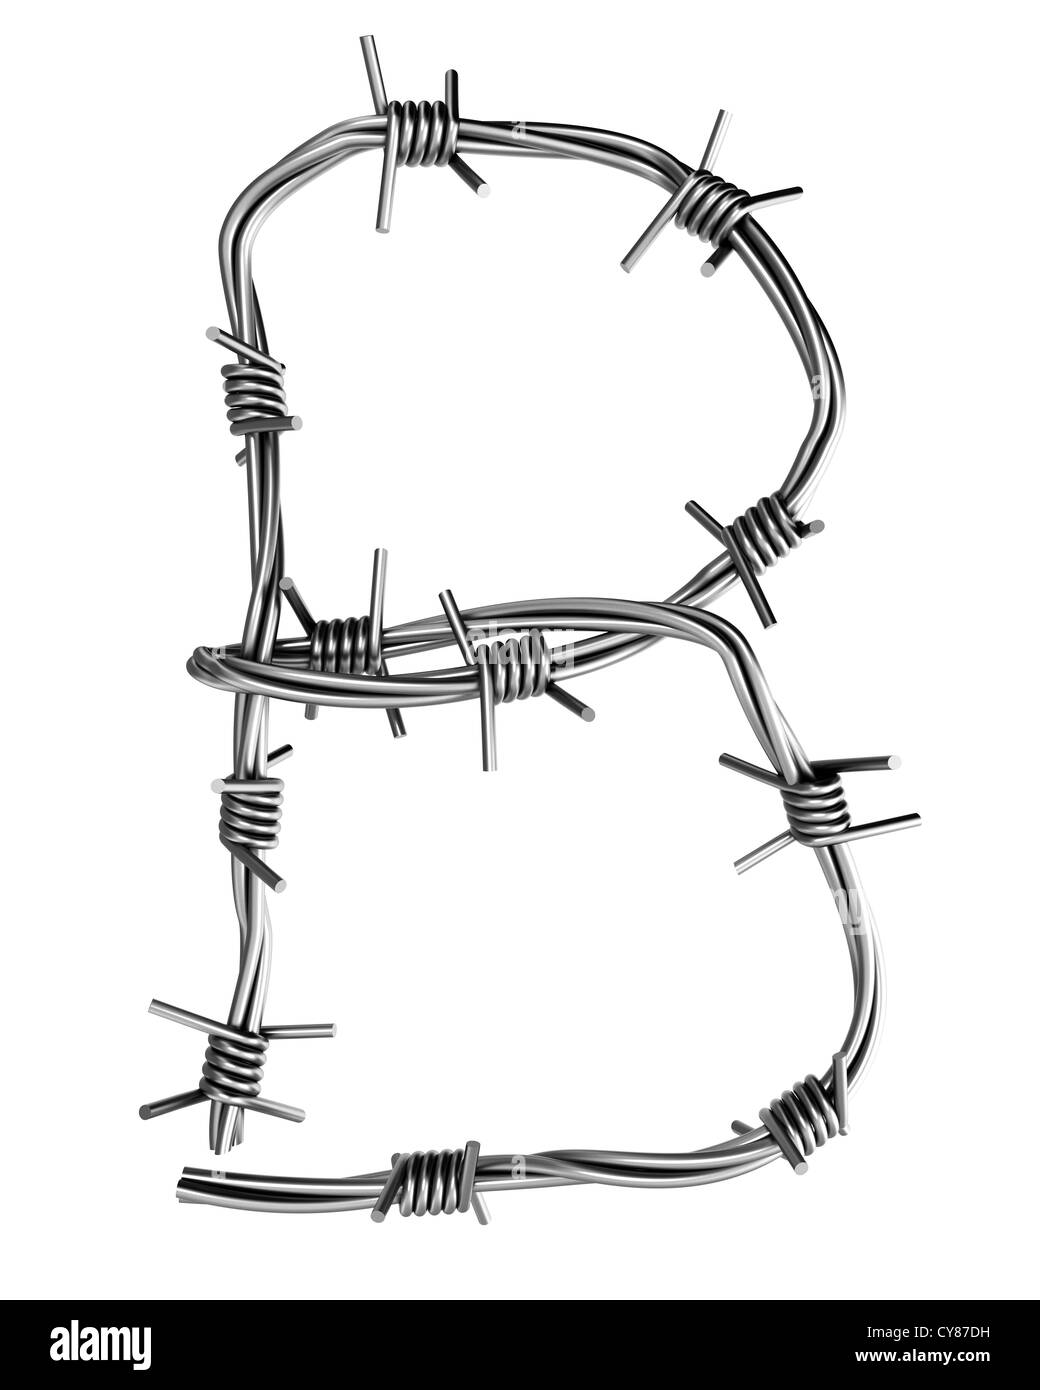 barbed wire diagram letter b made from barbed wire stock photo royalty image letter b made from barbed wire